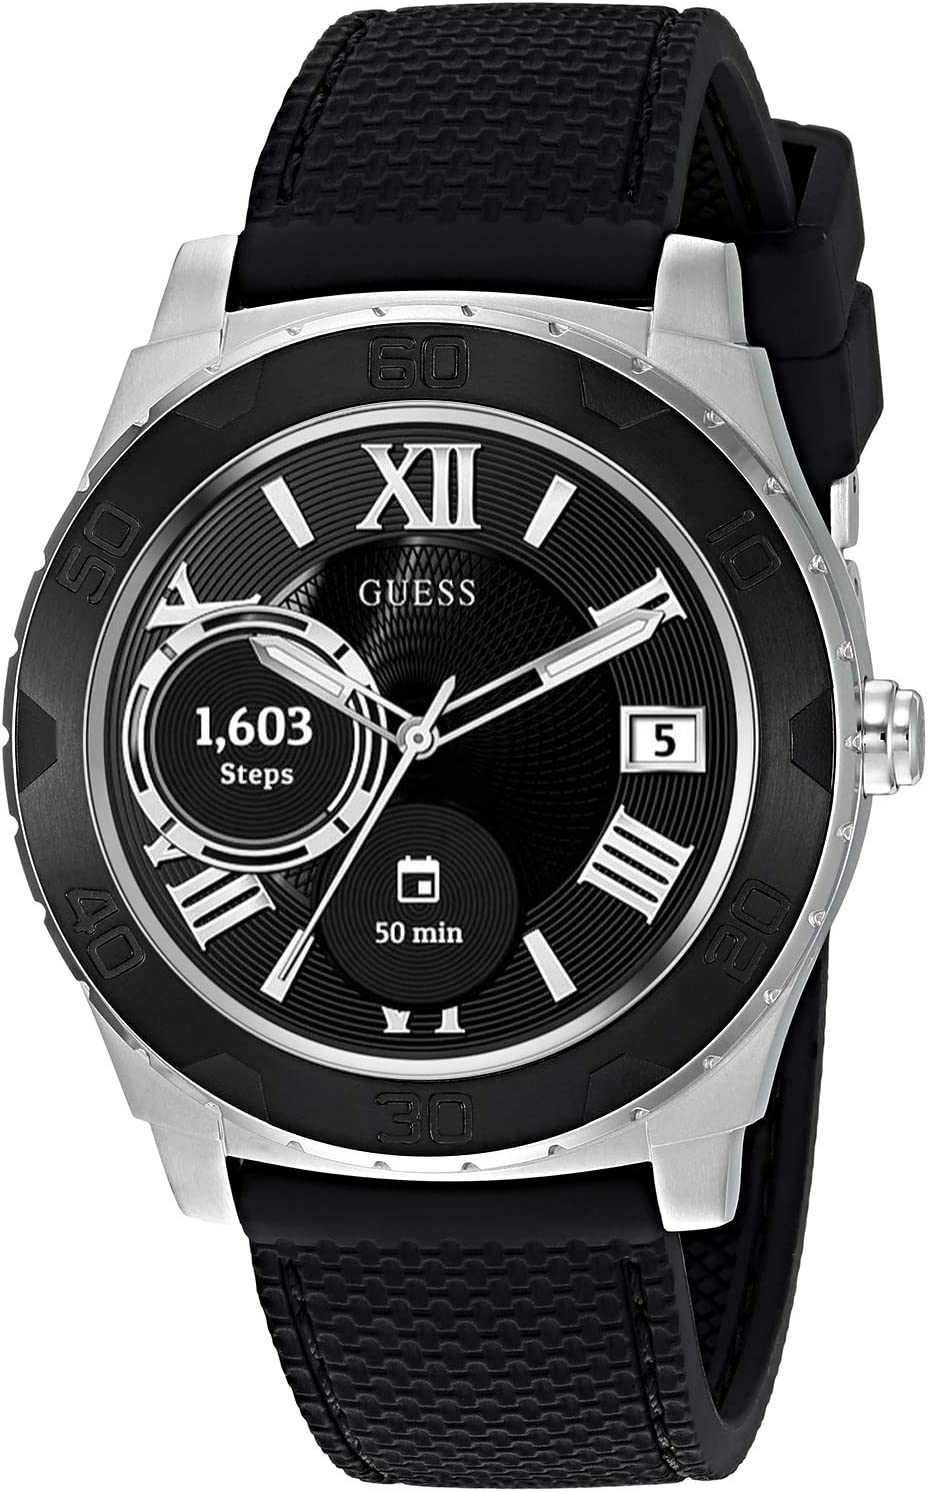 GUESS Men's Stainless Steel Android Wear Touch Screen Silicone Smart Watch, Color: Black (Model: C1001G1)